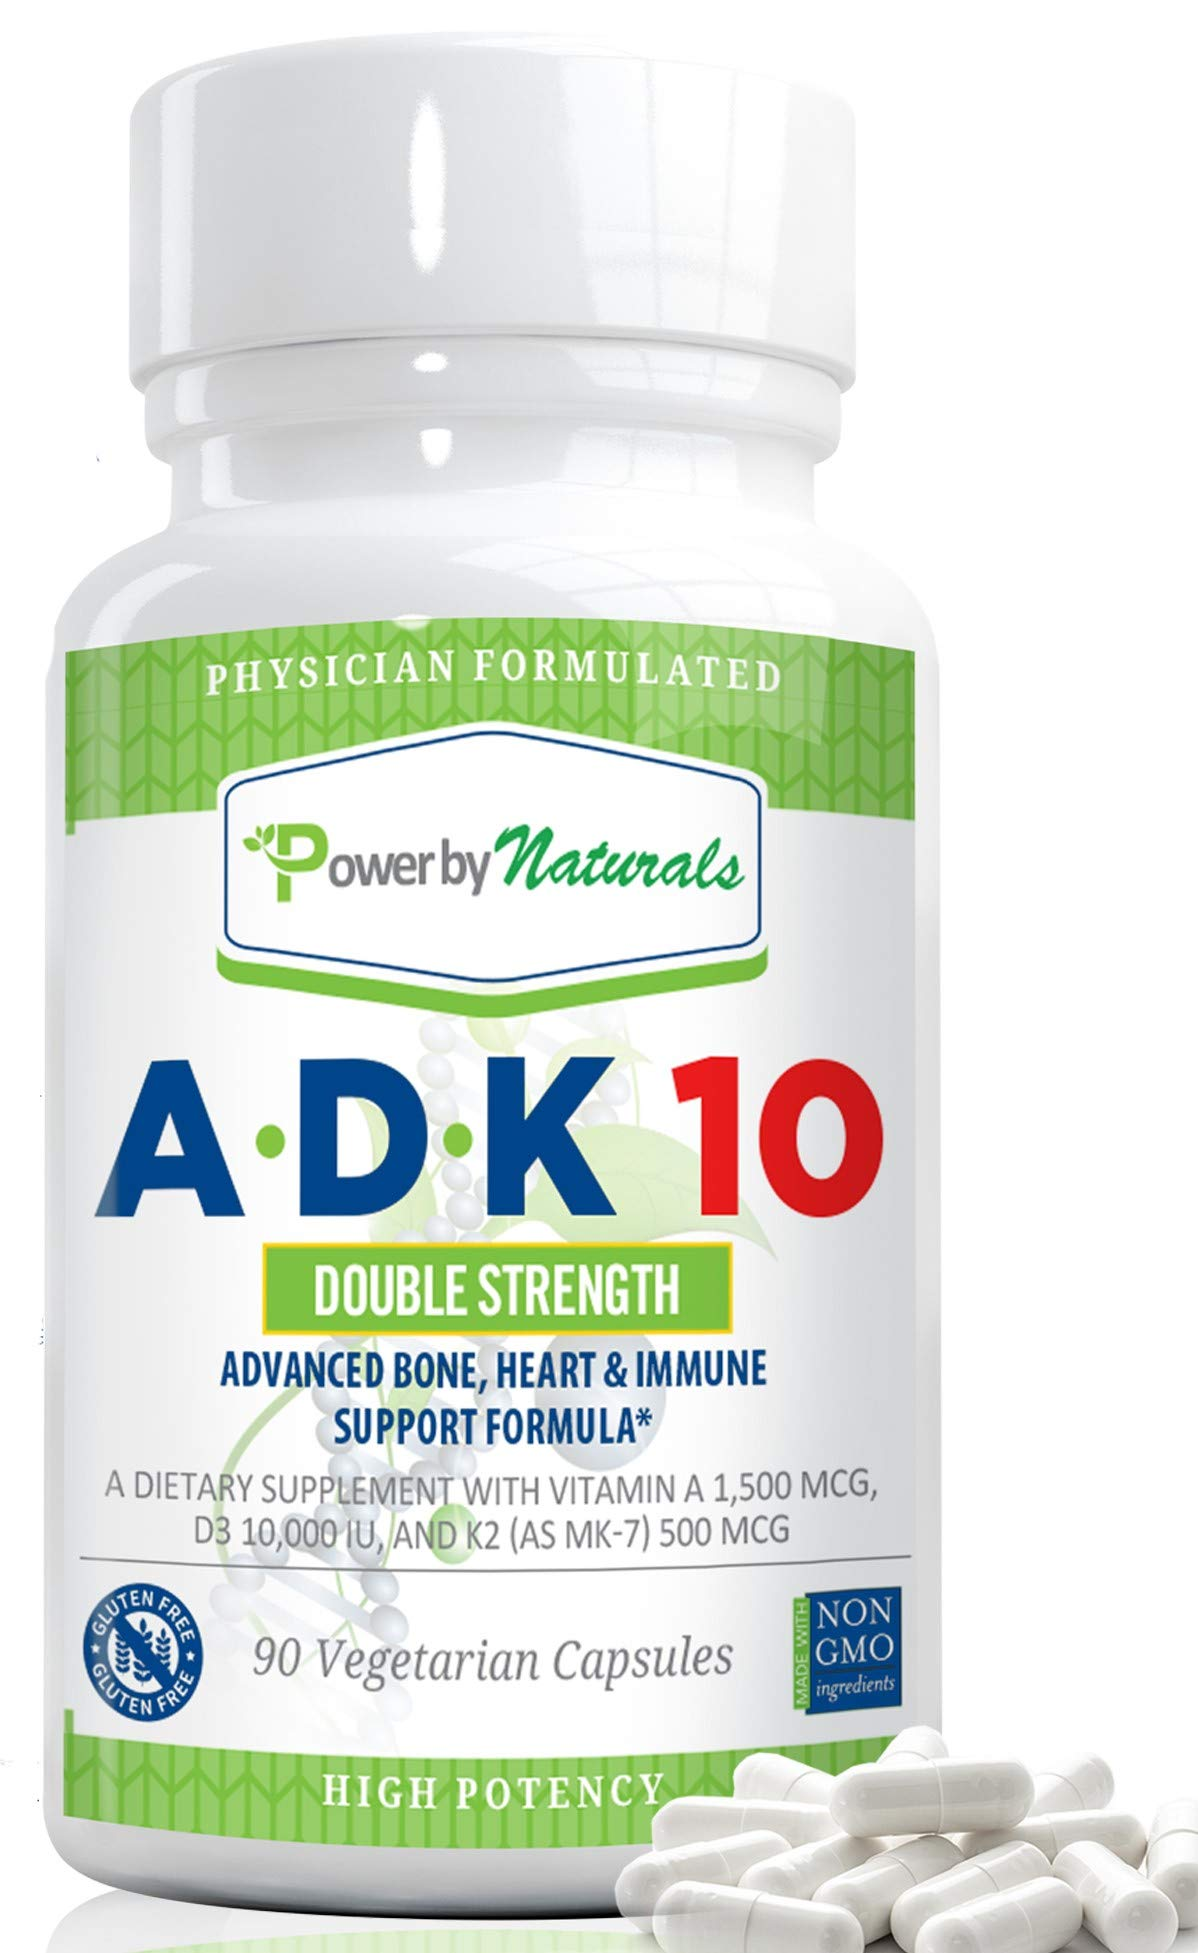 PbyN - ADK 10 Vitamin - Dr Formulated, Double Strength A D K 10000 iu - High Potency Vitamins A, D3 (10,000 iu), K2 (as MK-7) - Supplement for Bone, Heart, Immune Support, 90 Pills 3 Months, No Soy by Power By Naturals